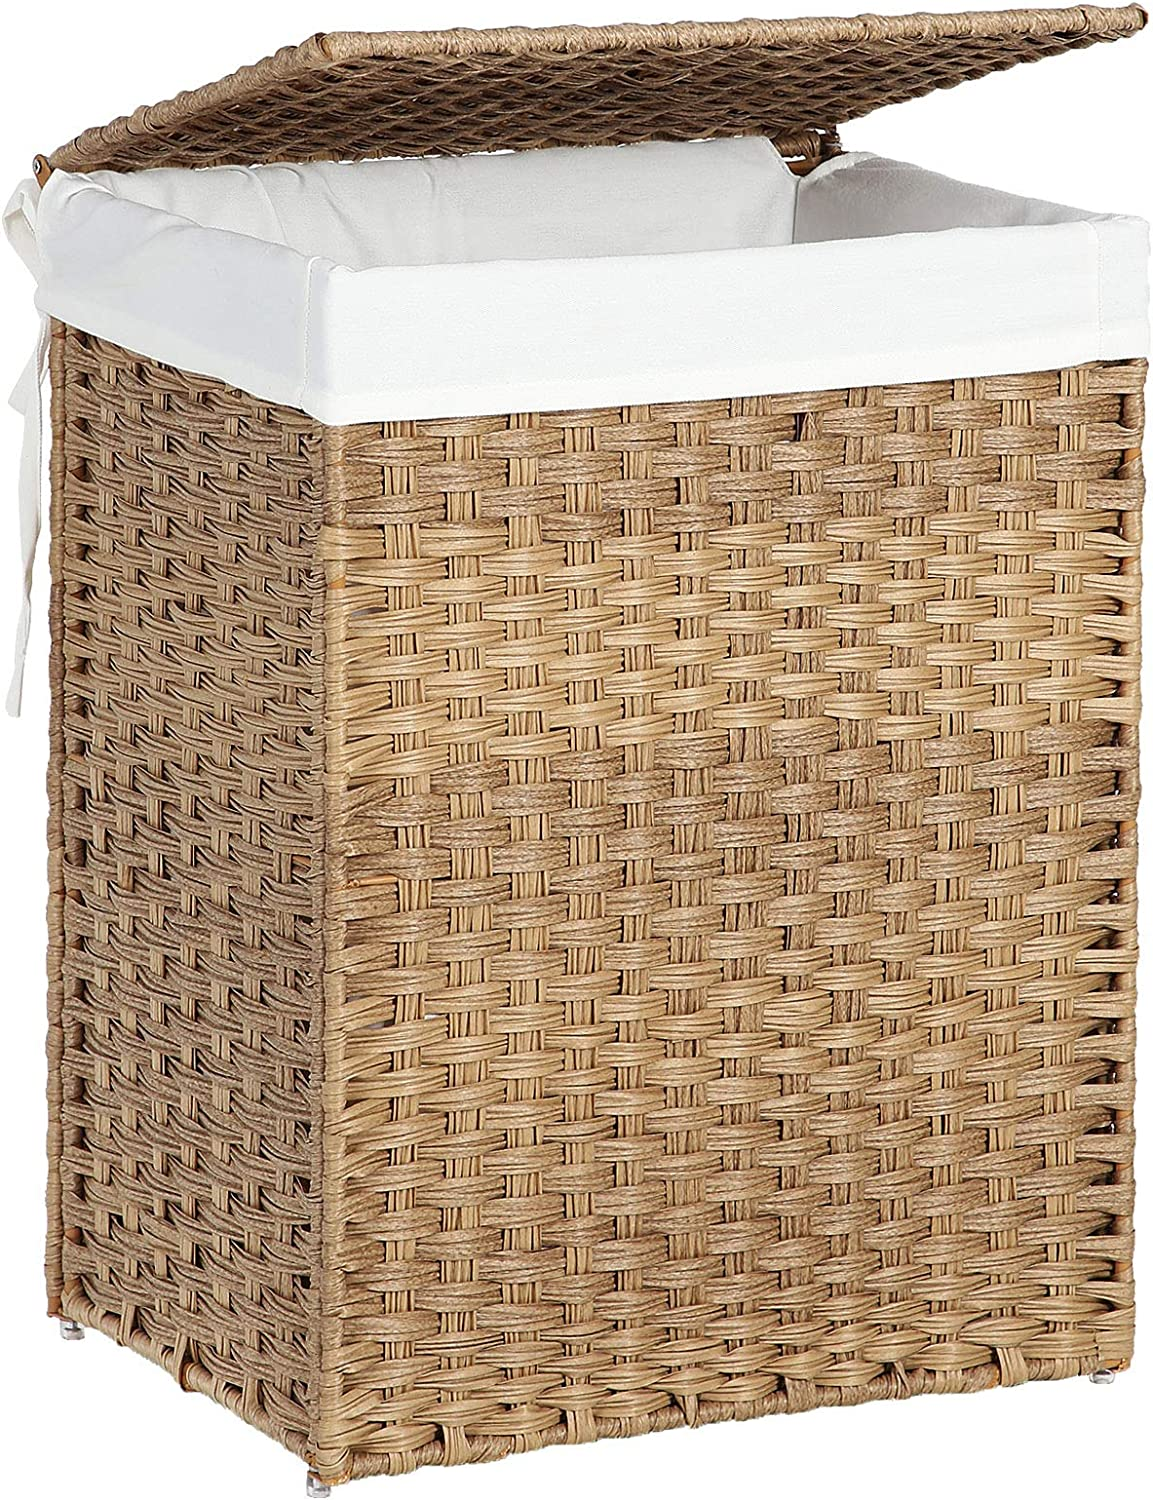 SONGMICS Handwoven Laundry Hamper, Synthetic Rattan Laundry Basket with Removable Liner Bag, Clothes Hamper with Handles for Laundry Room, Natural ULCB51NL